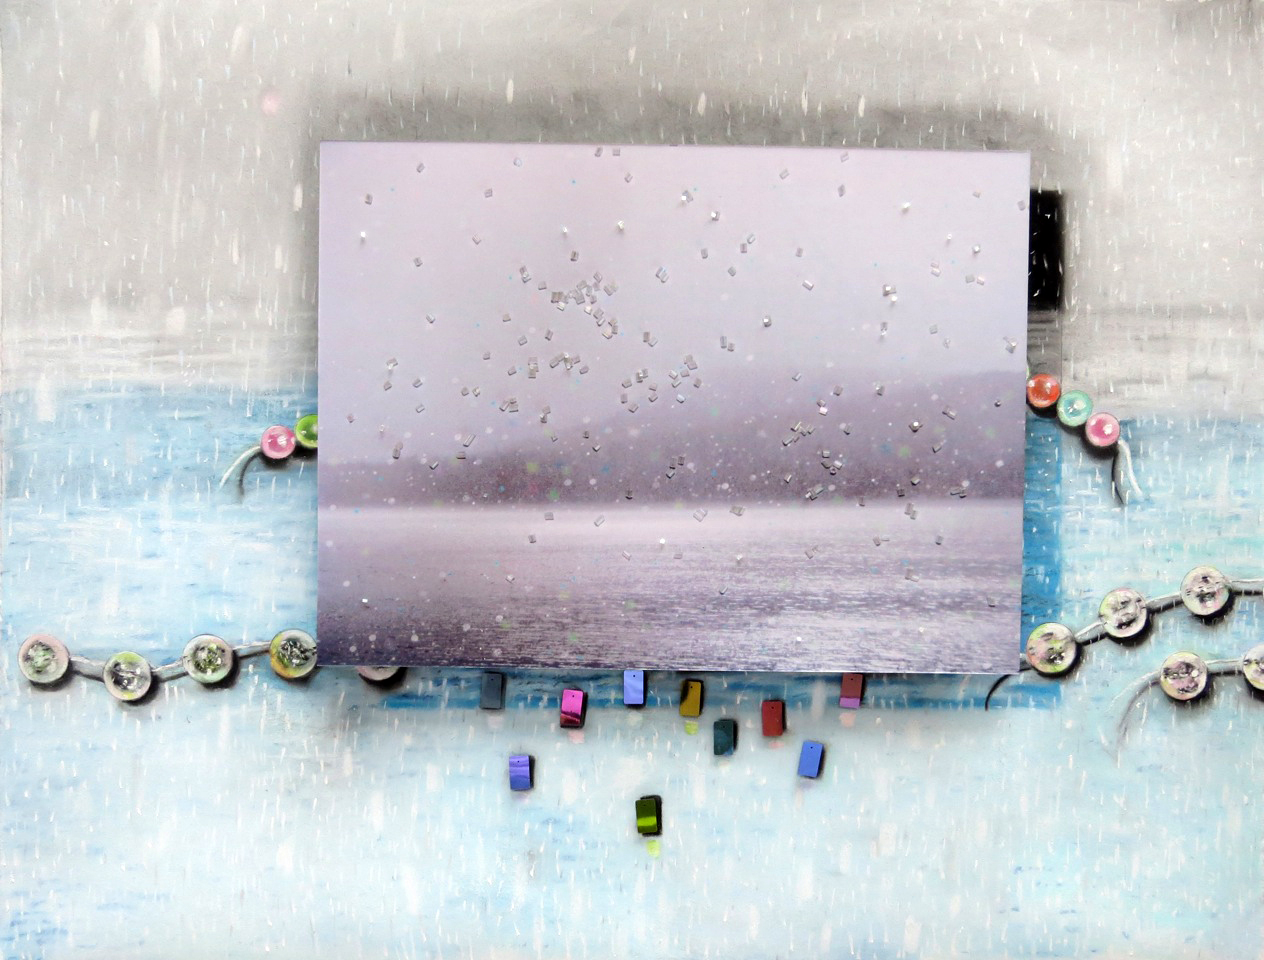 Sparkle of Precipitation  31 x 34, pastel on paper, photograph, palettes, beads SOLD